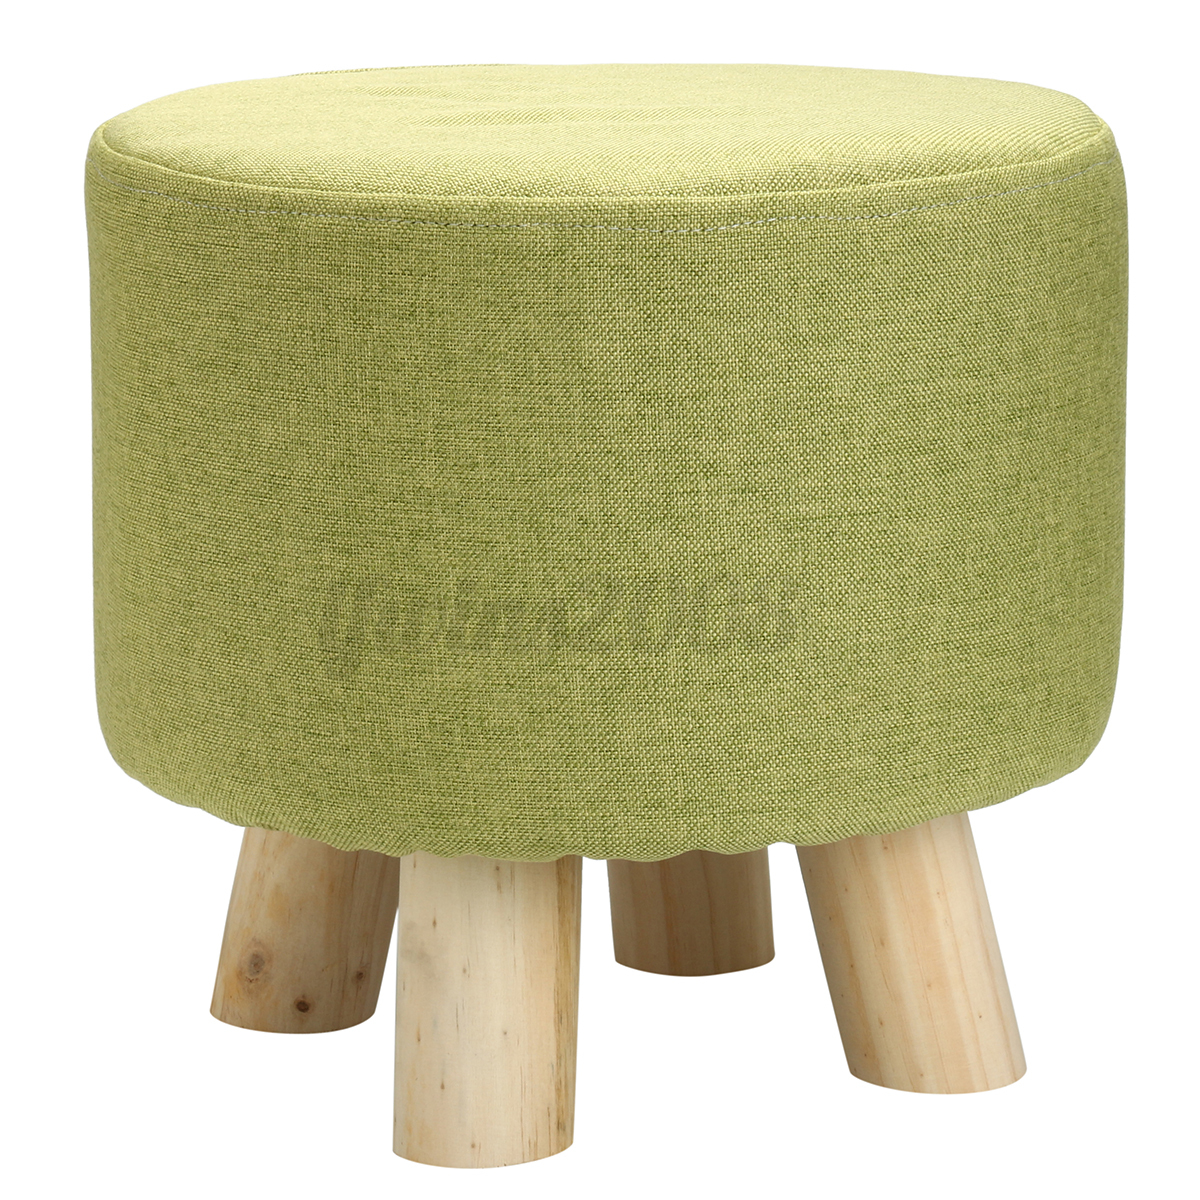 Footstool Small Round Wood Pouffe Chair Ottoman Foot